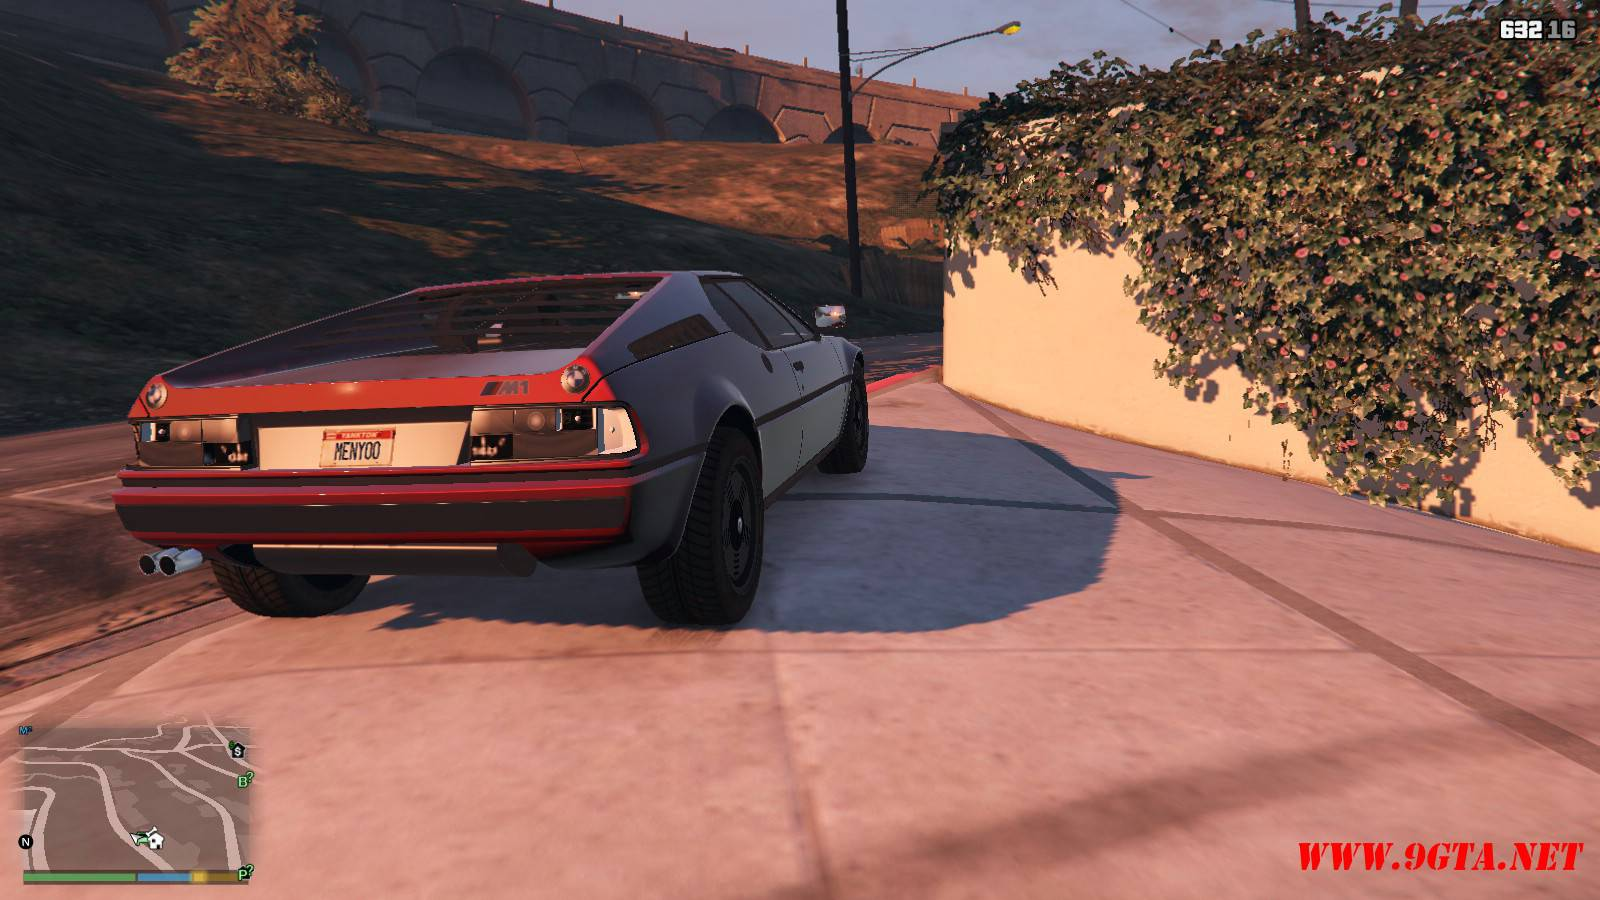 1981 BMW M1 v2.0 Mod For GTA5 (17)